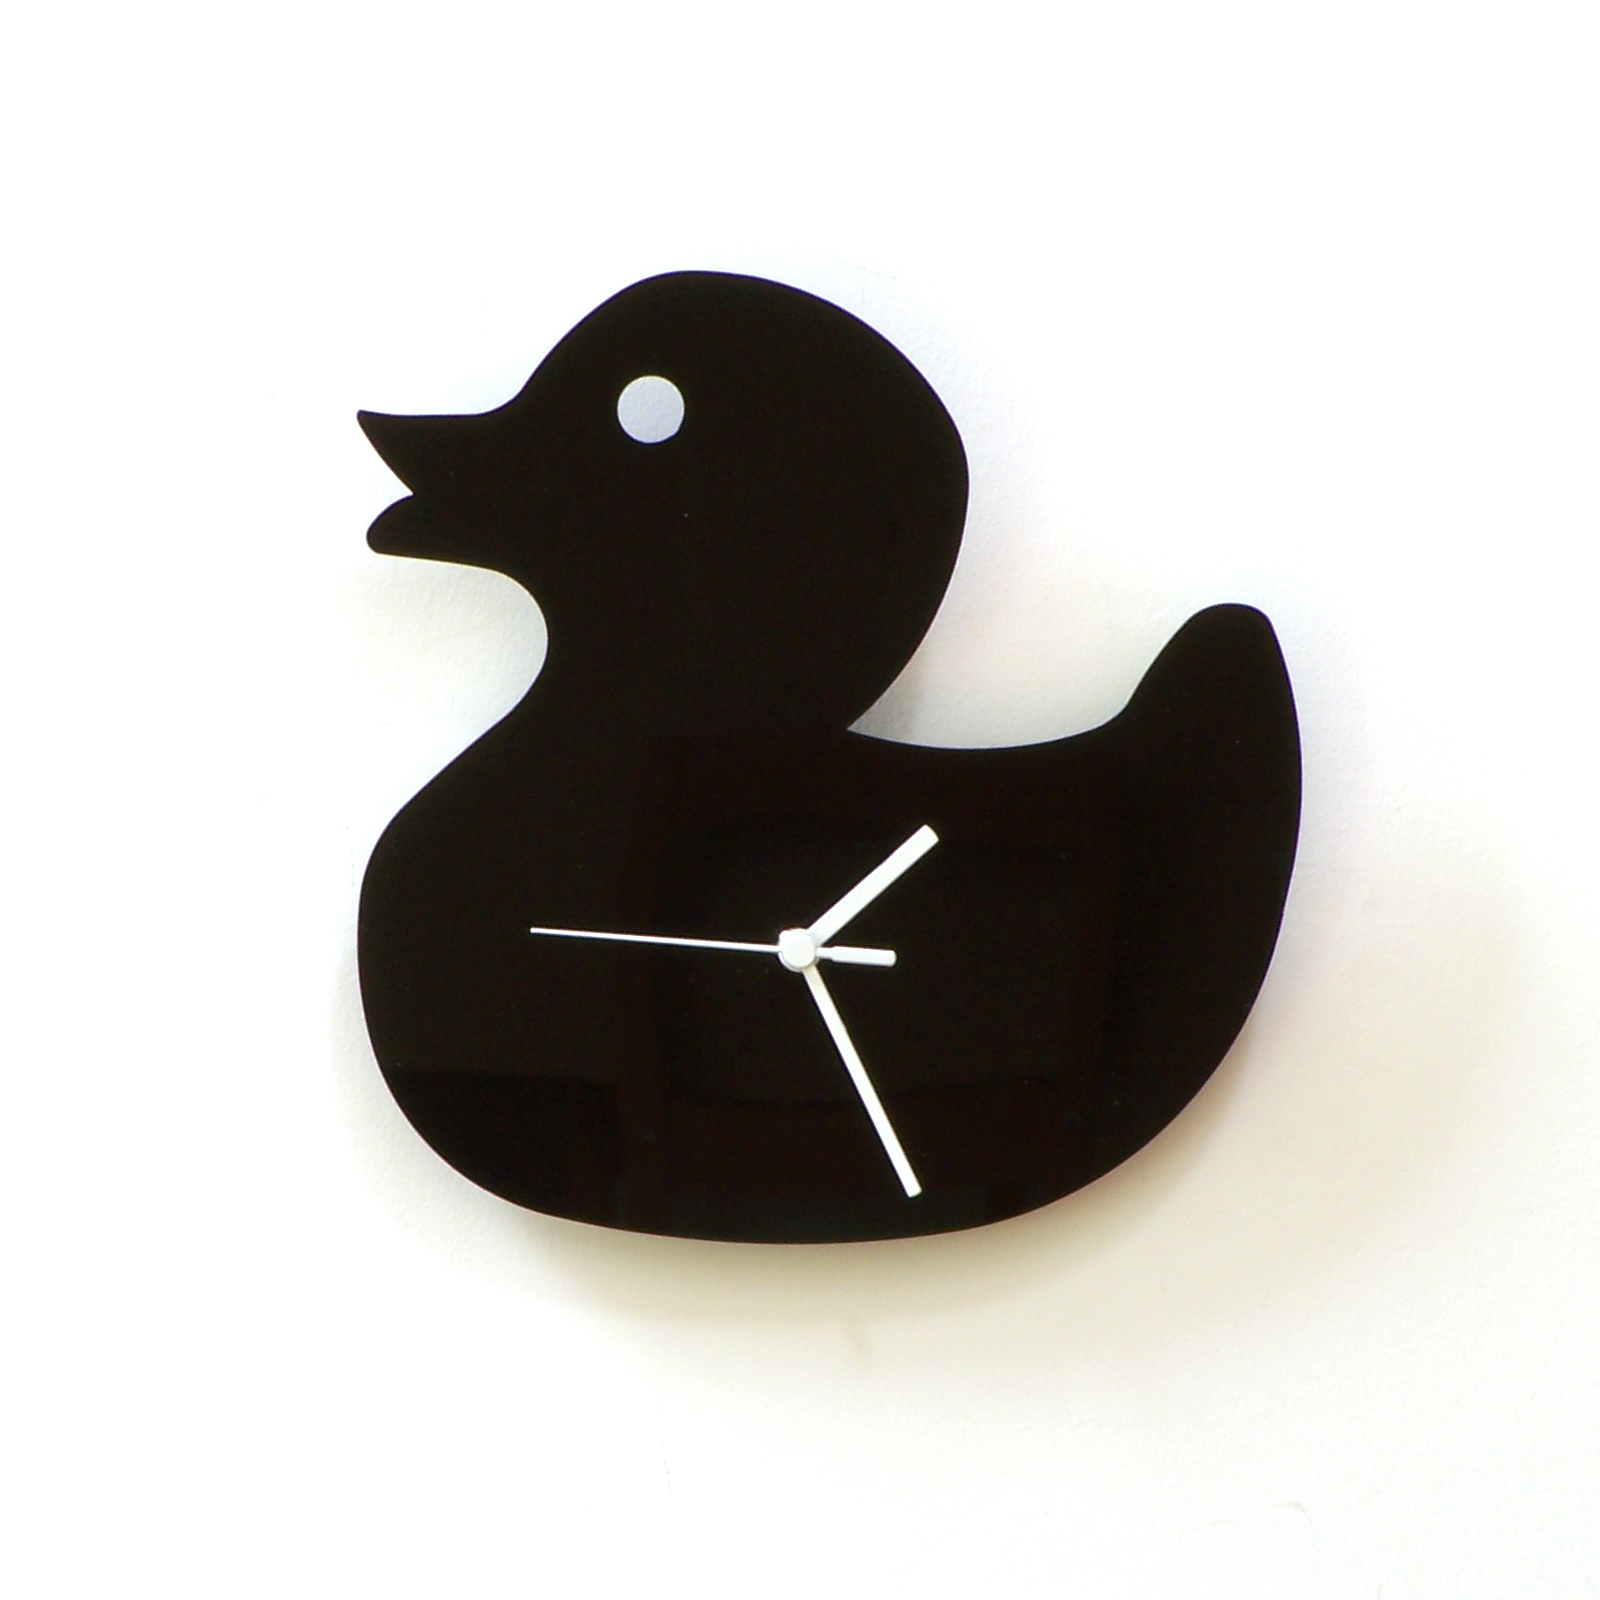 Exciting black acryliic wall clock   duck   front